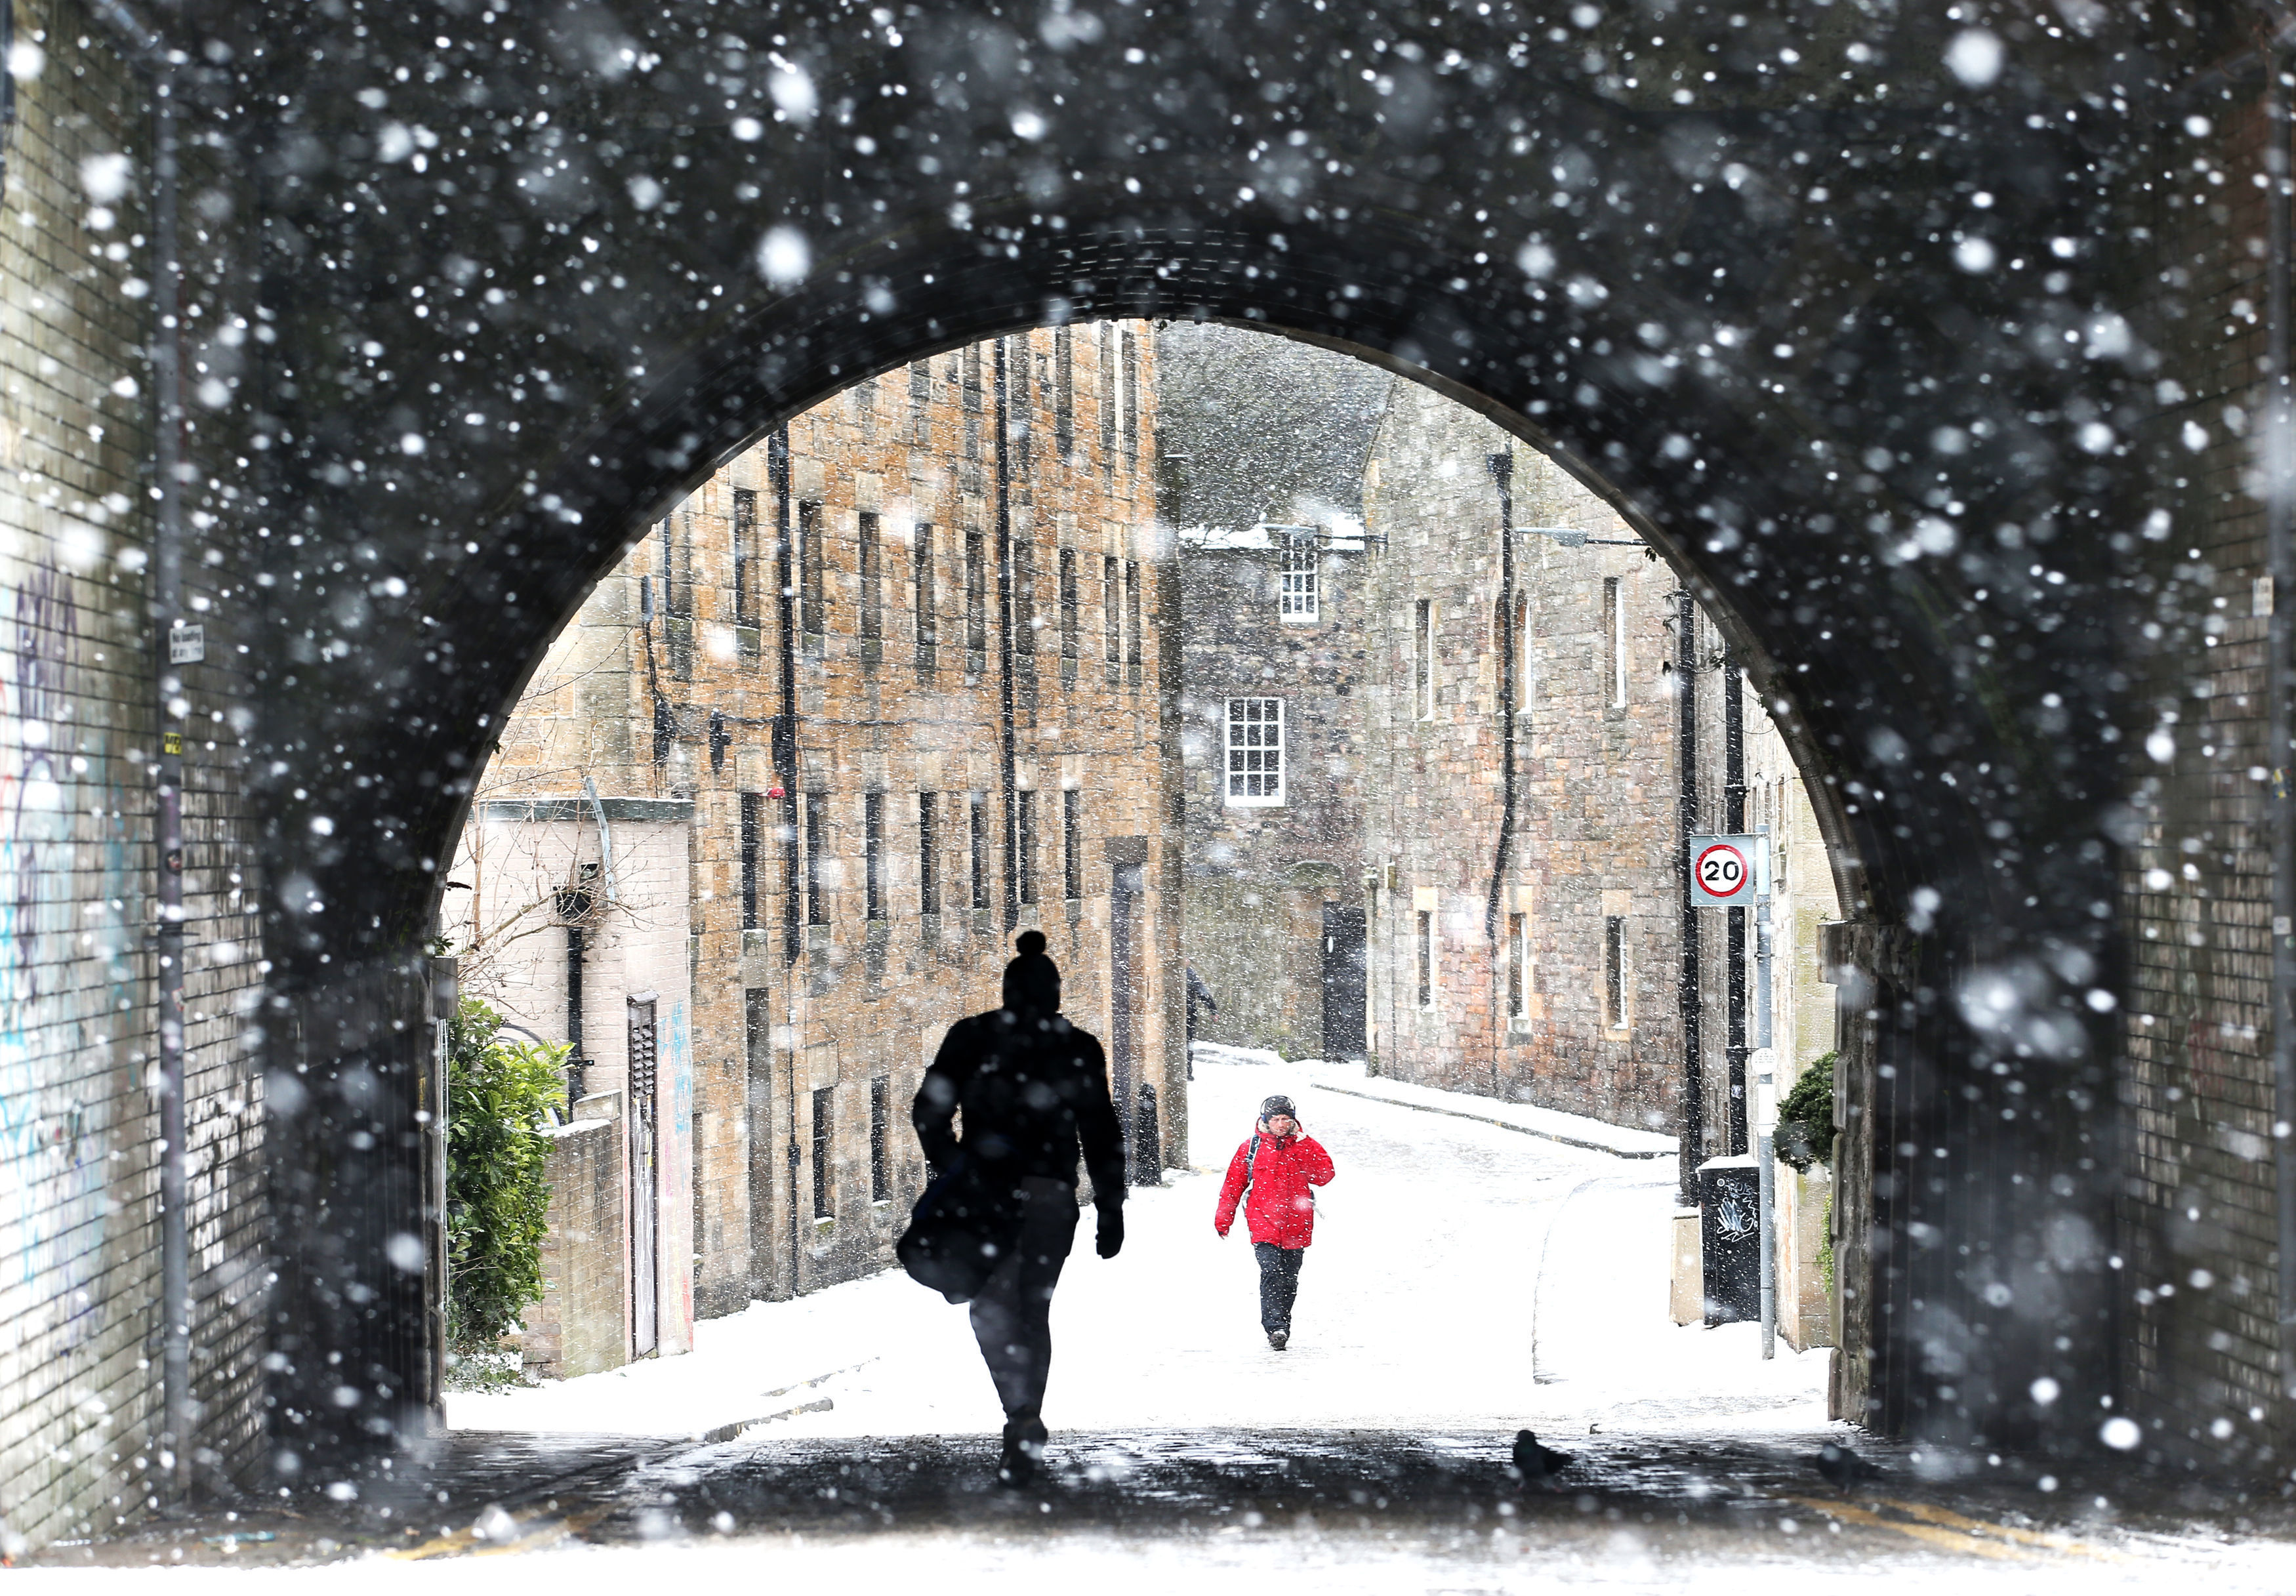 Edinburgh still looking lovely in the snow. Credit: PA